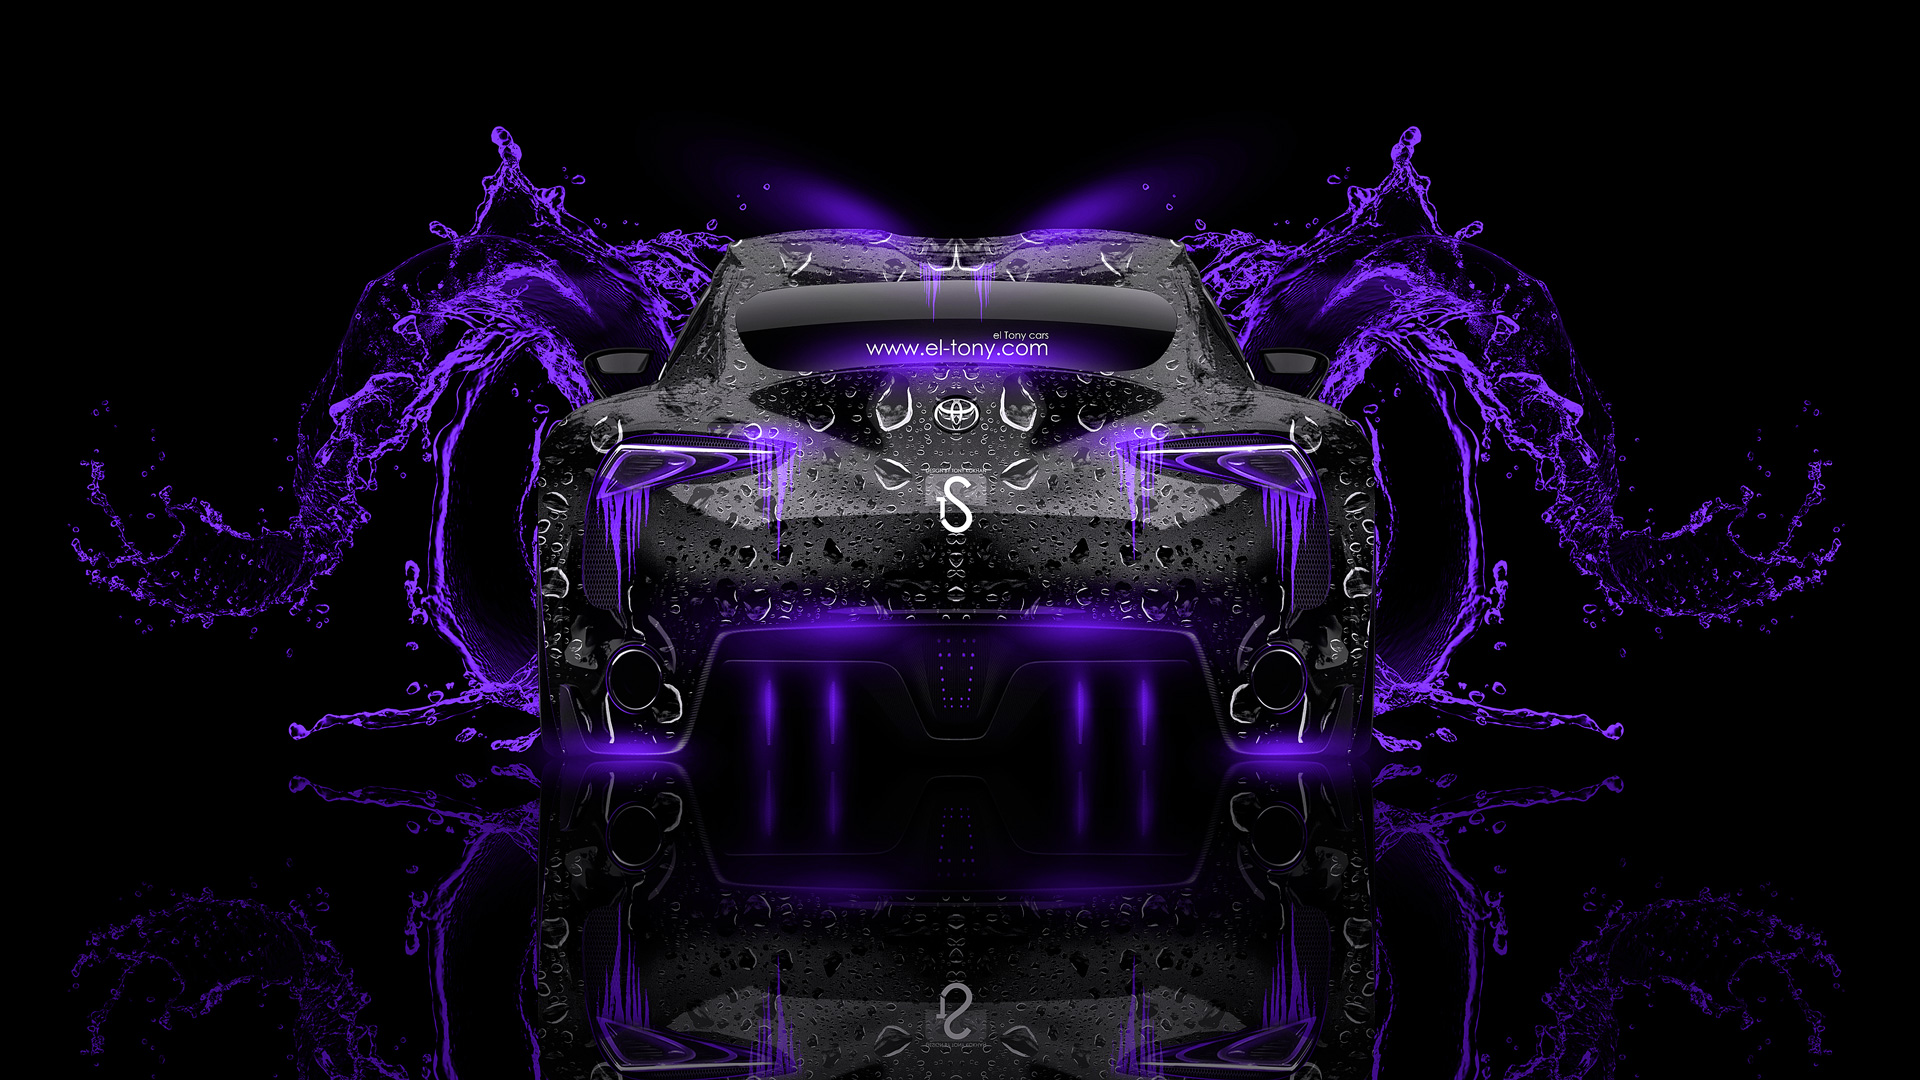 Toyota-FT-1-Back-Violet-Neon-Water-Abstract-Car-2014-design-by-Tony-Kokhan-www.el-tony.com_.jpg